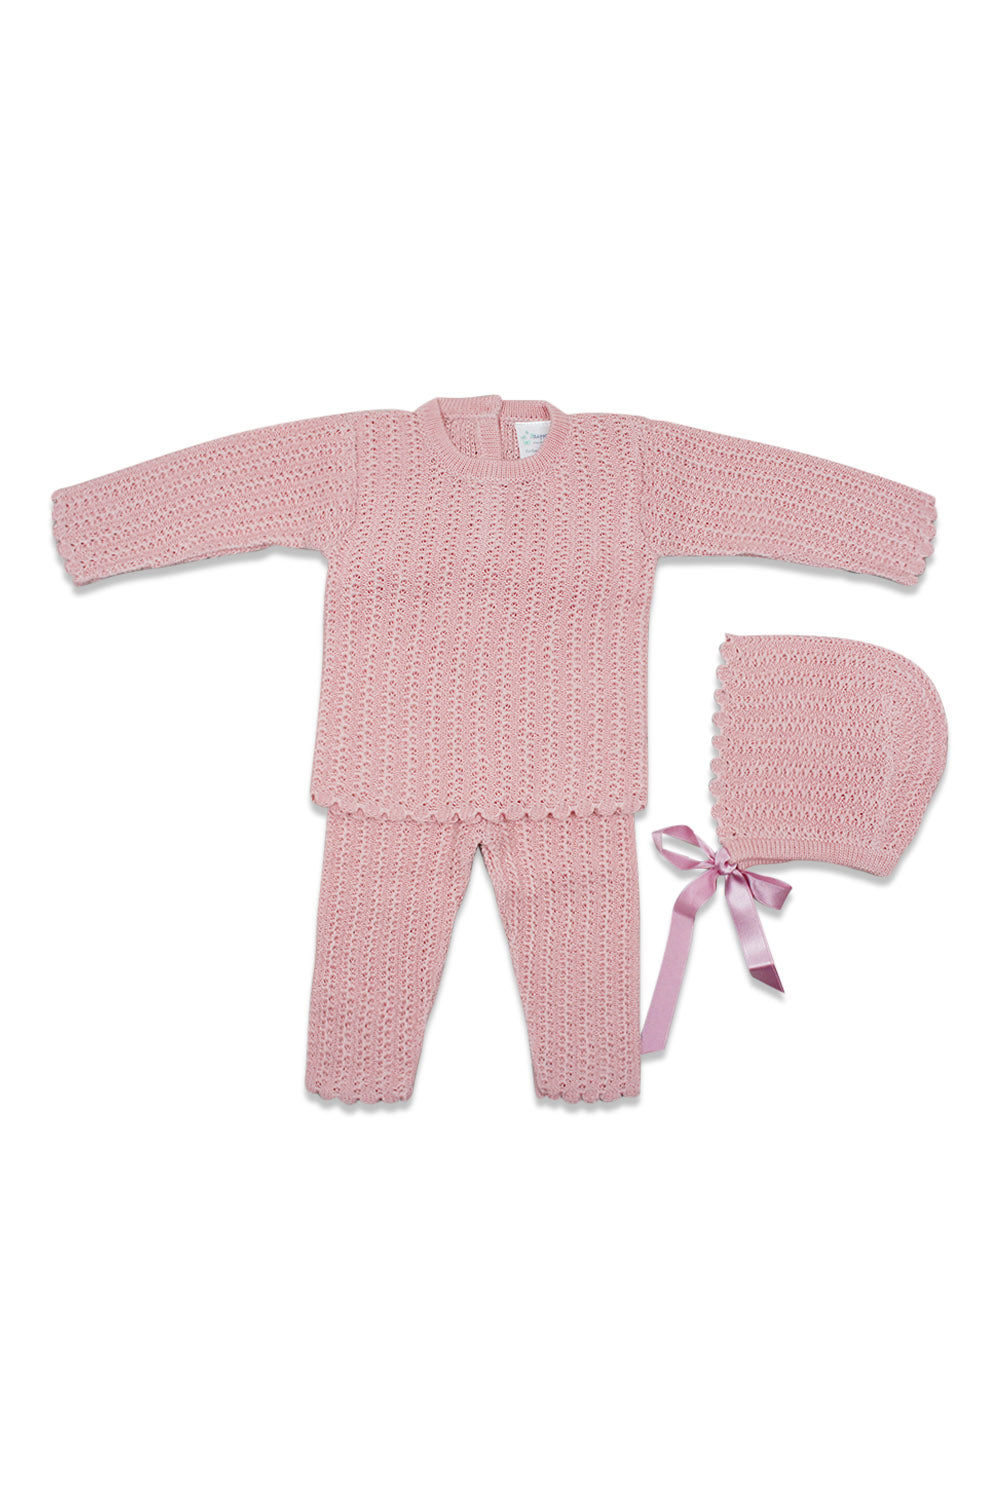 Antonella Pink Knit Set